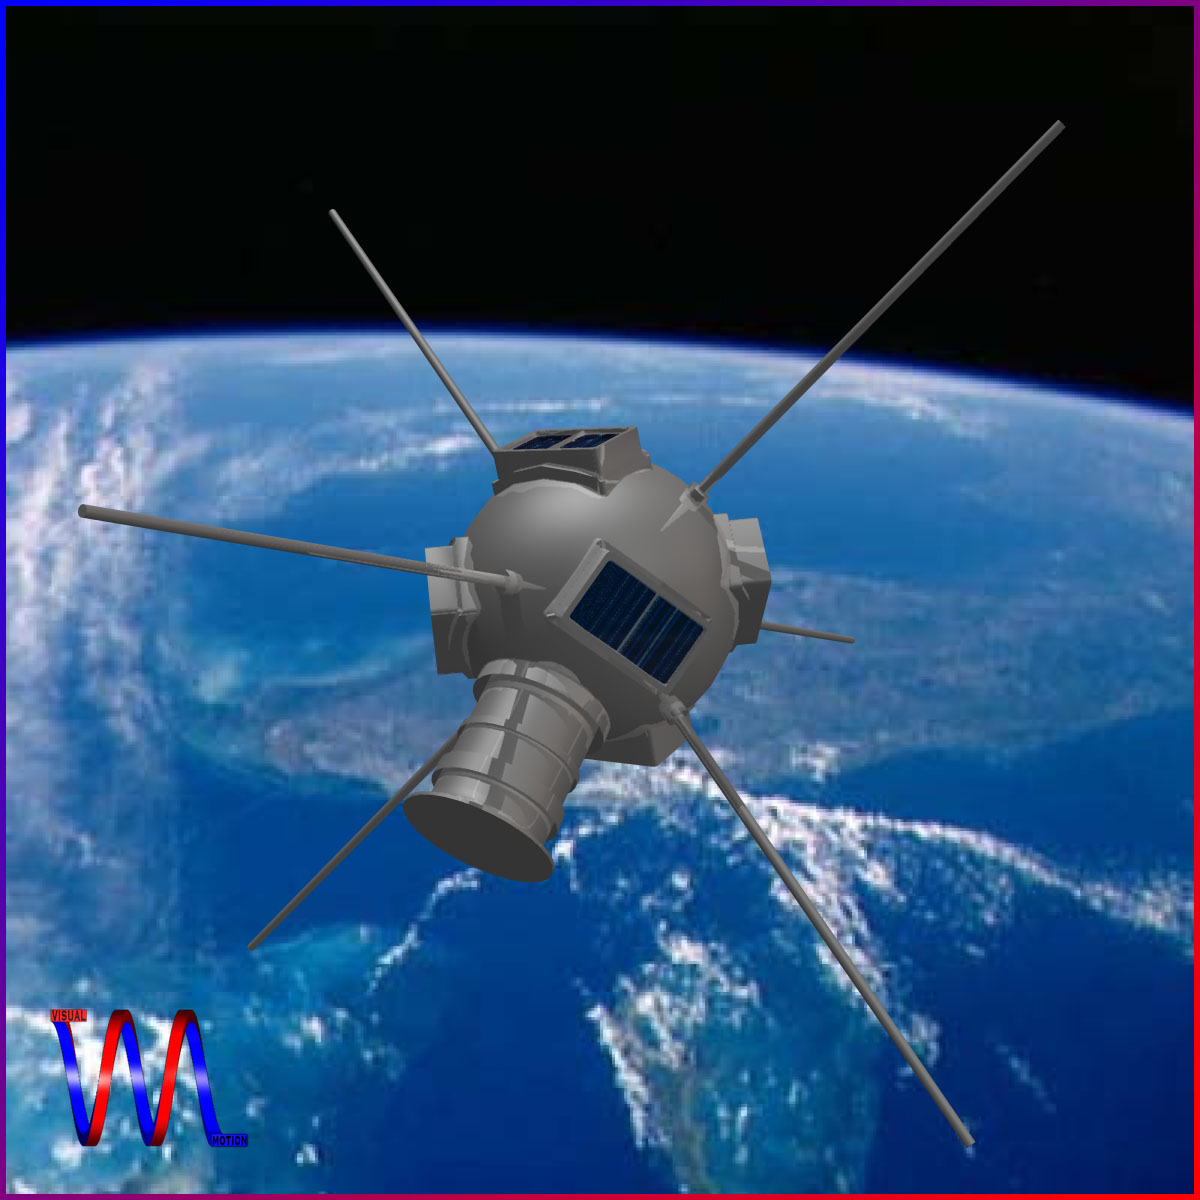 vanguard i satellite 3d model 3ds dxf fbx blend cob dae x obj 163927